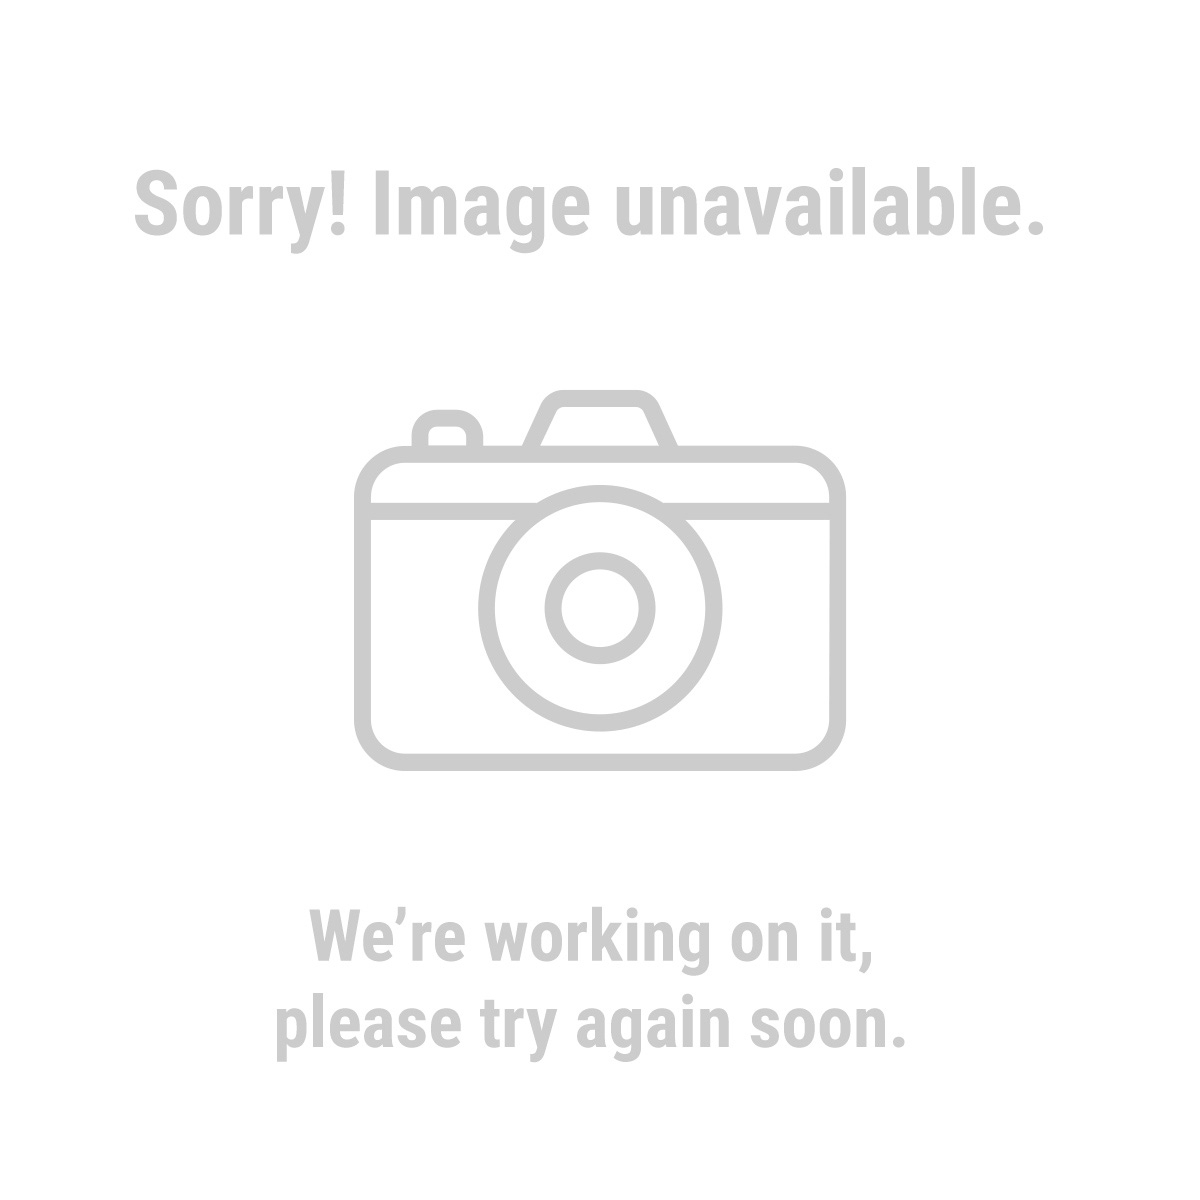 90764 32 Piece Screwdriver Set